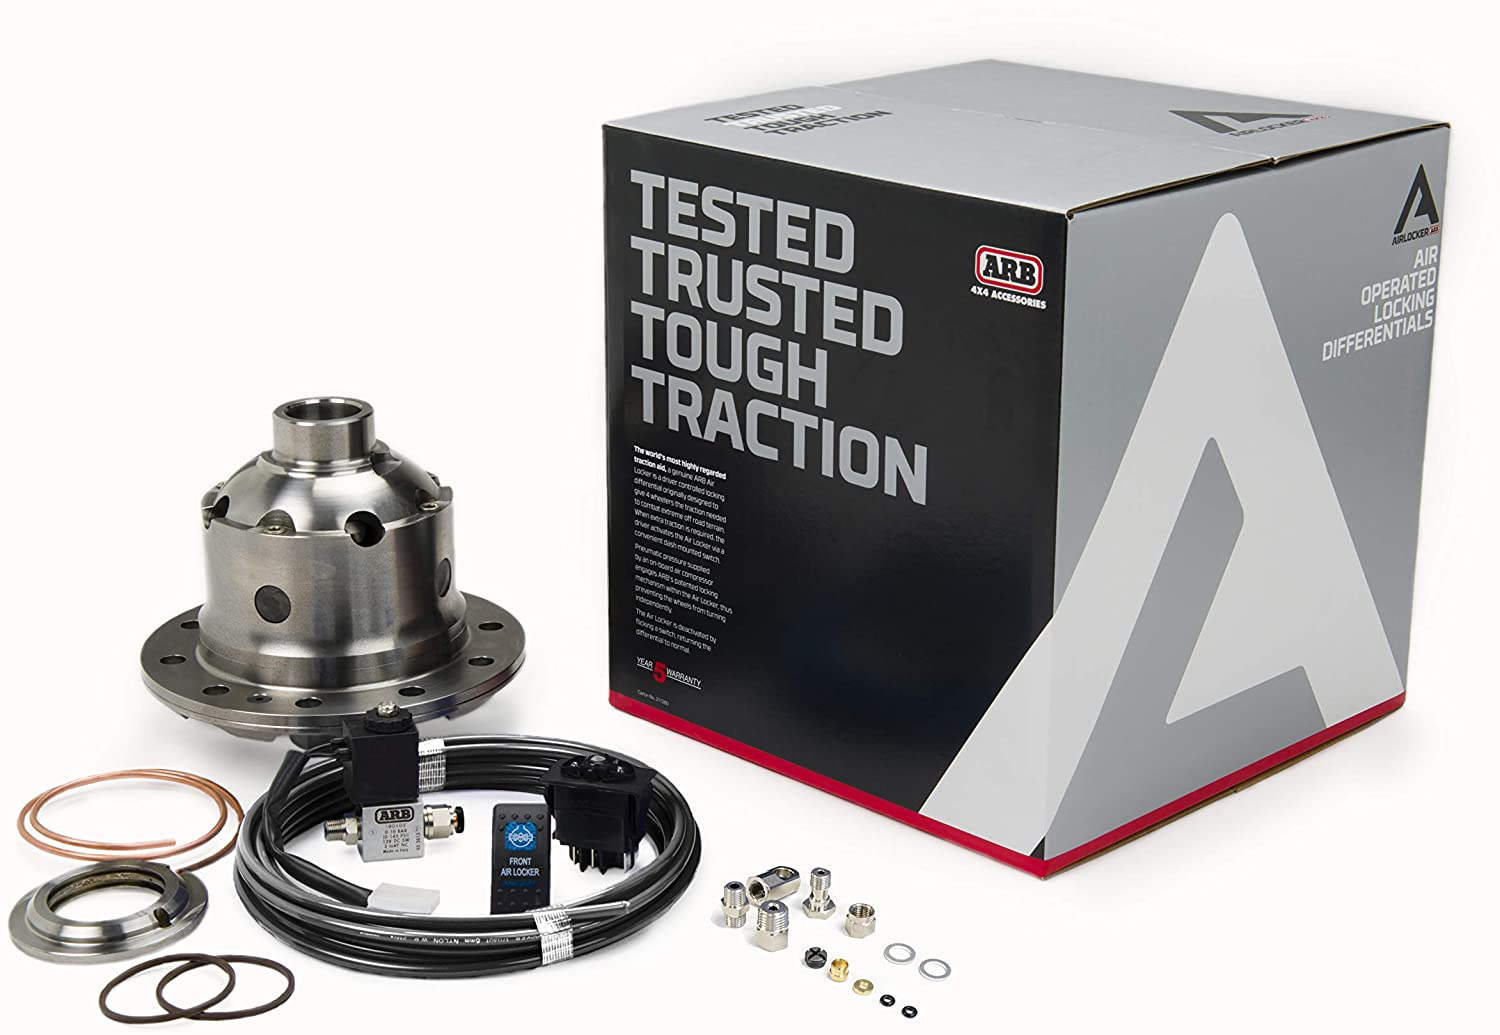 ARB RD81 Air Operated Locking Differential for Ford 8.8